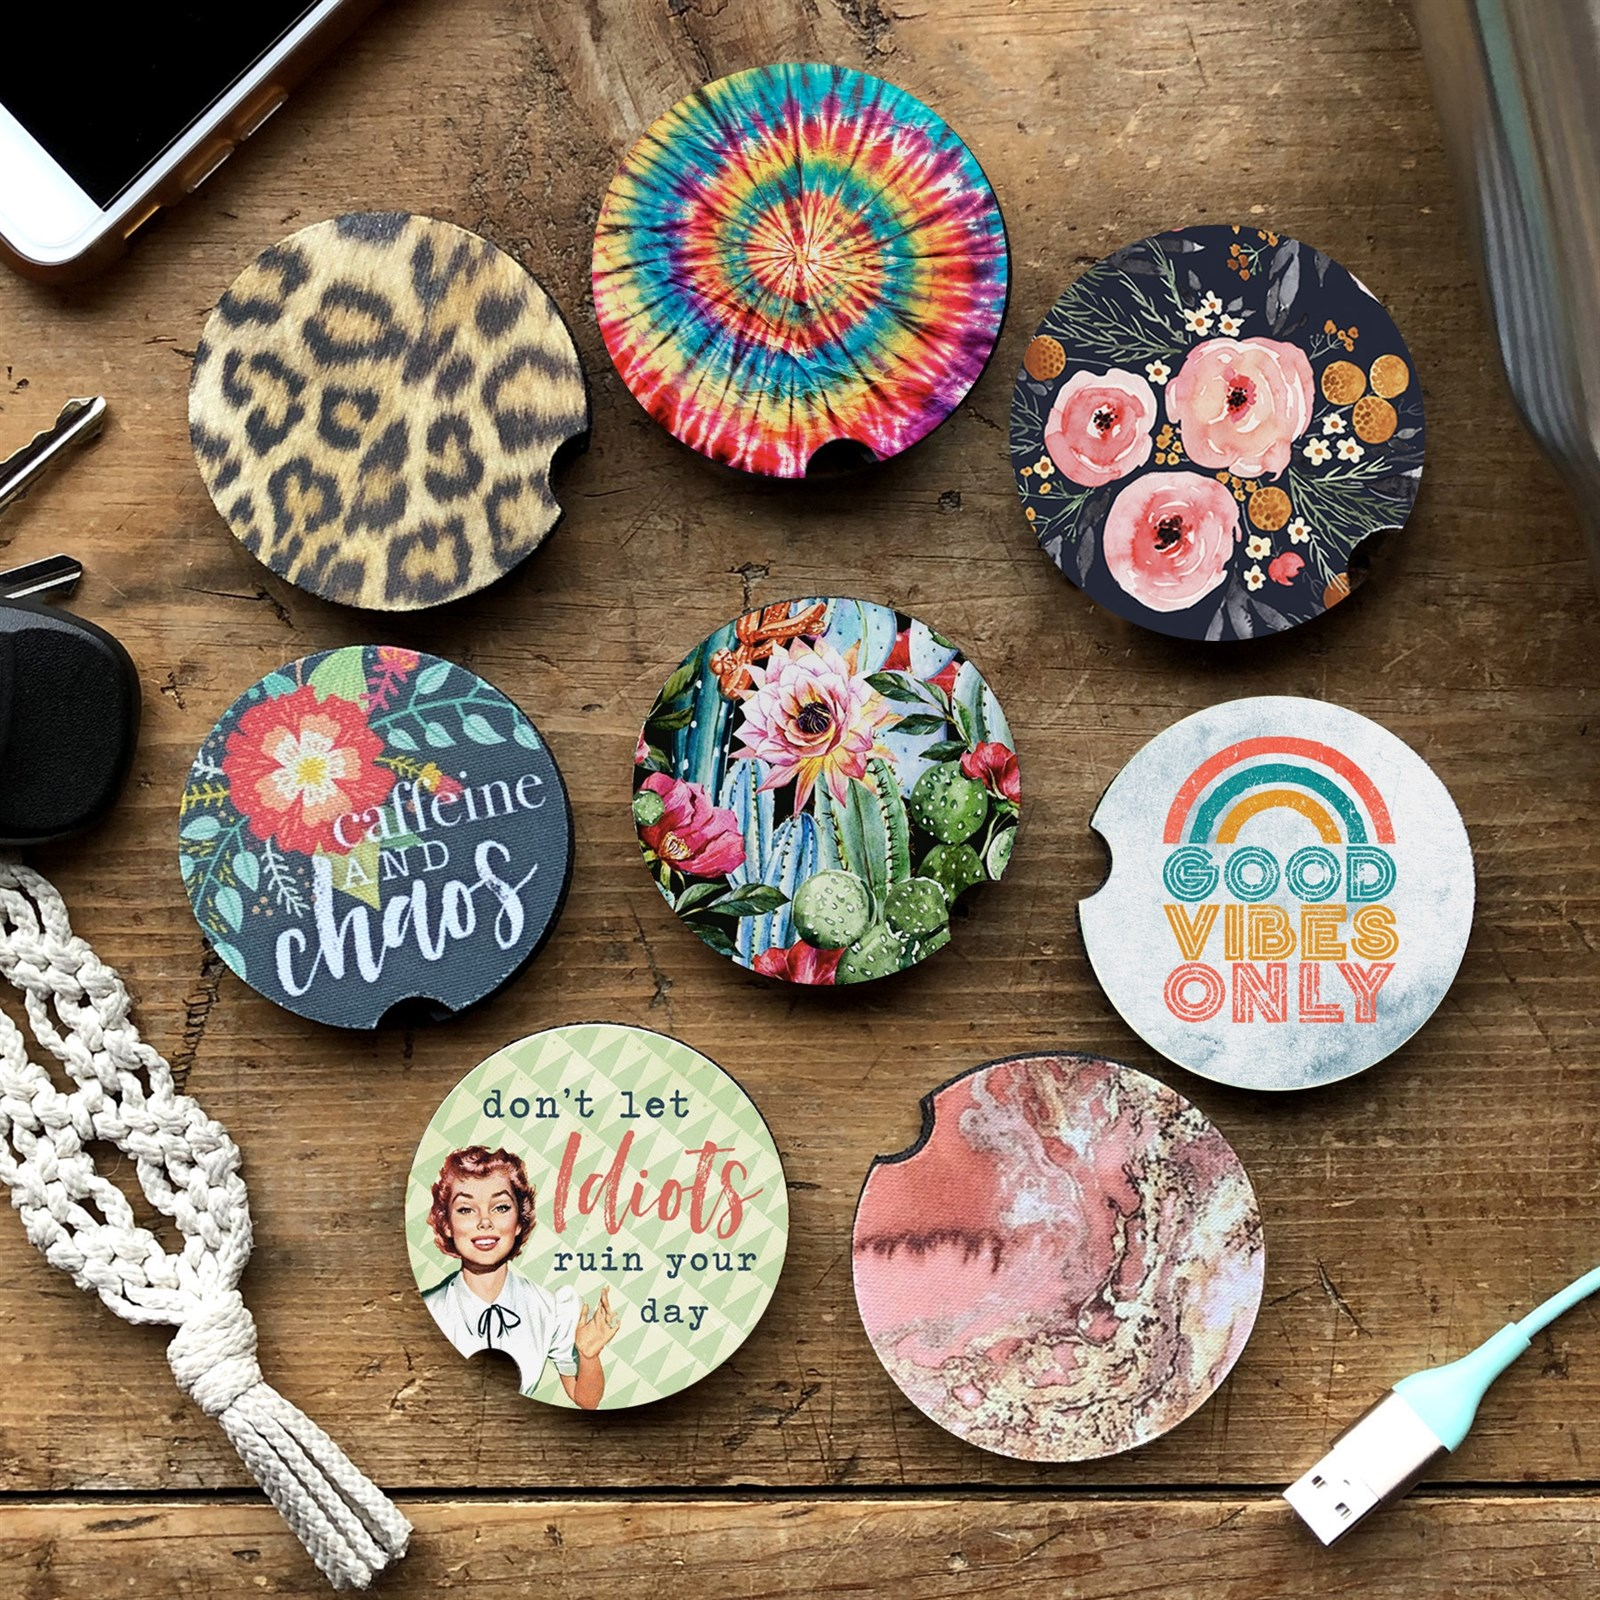 Tupalatus Mandala Lotus Car Keychain Drink Cup Mat Set of 4 Pieces for Women Ladies Gifts,Car Accessories Coasters Prevent Your Car Interior from Dirty and Scratching